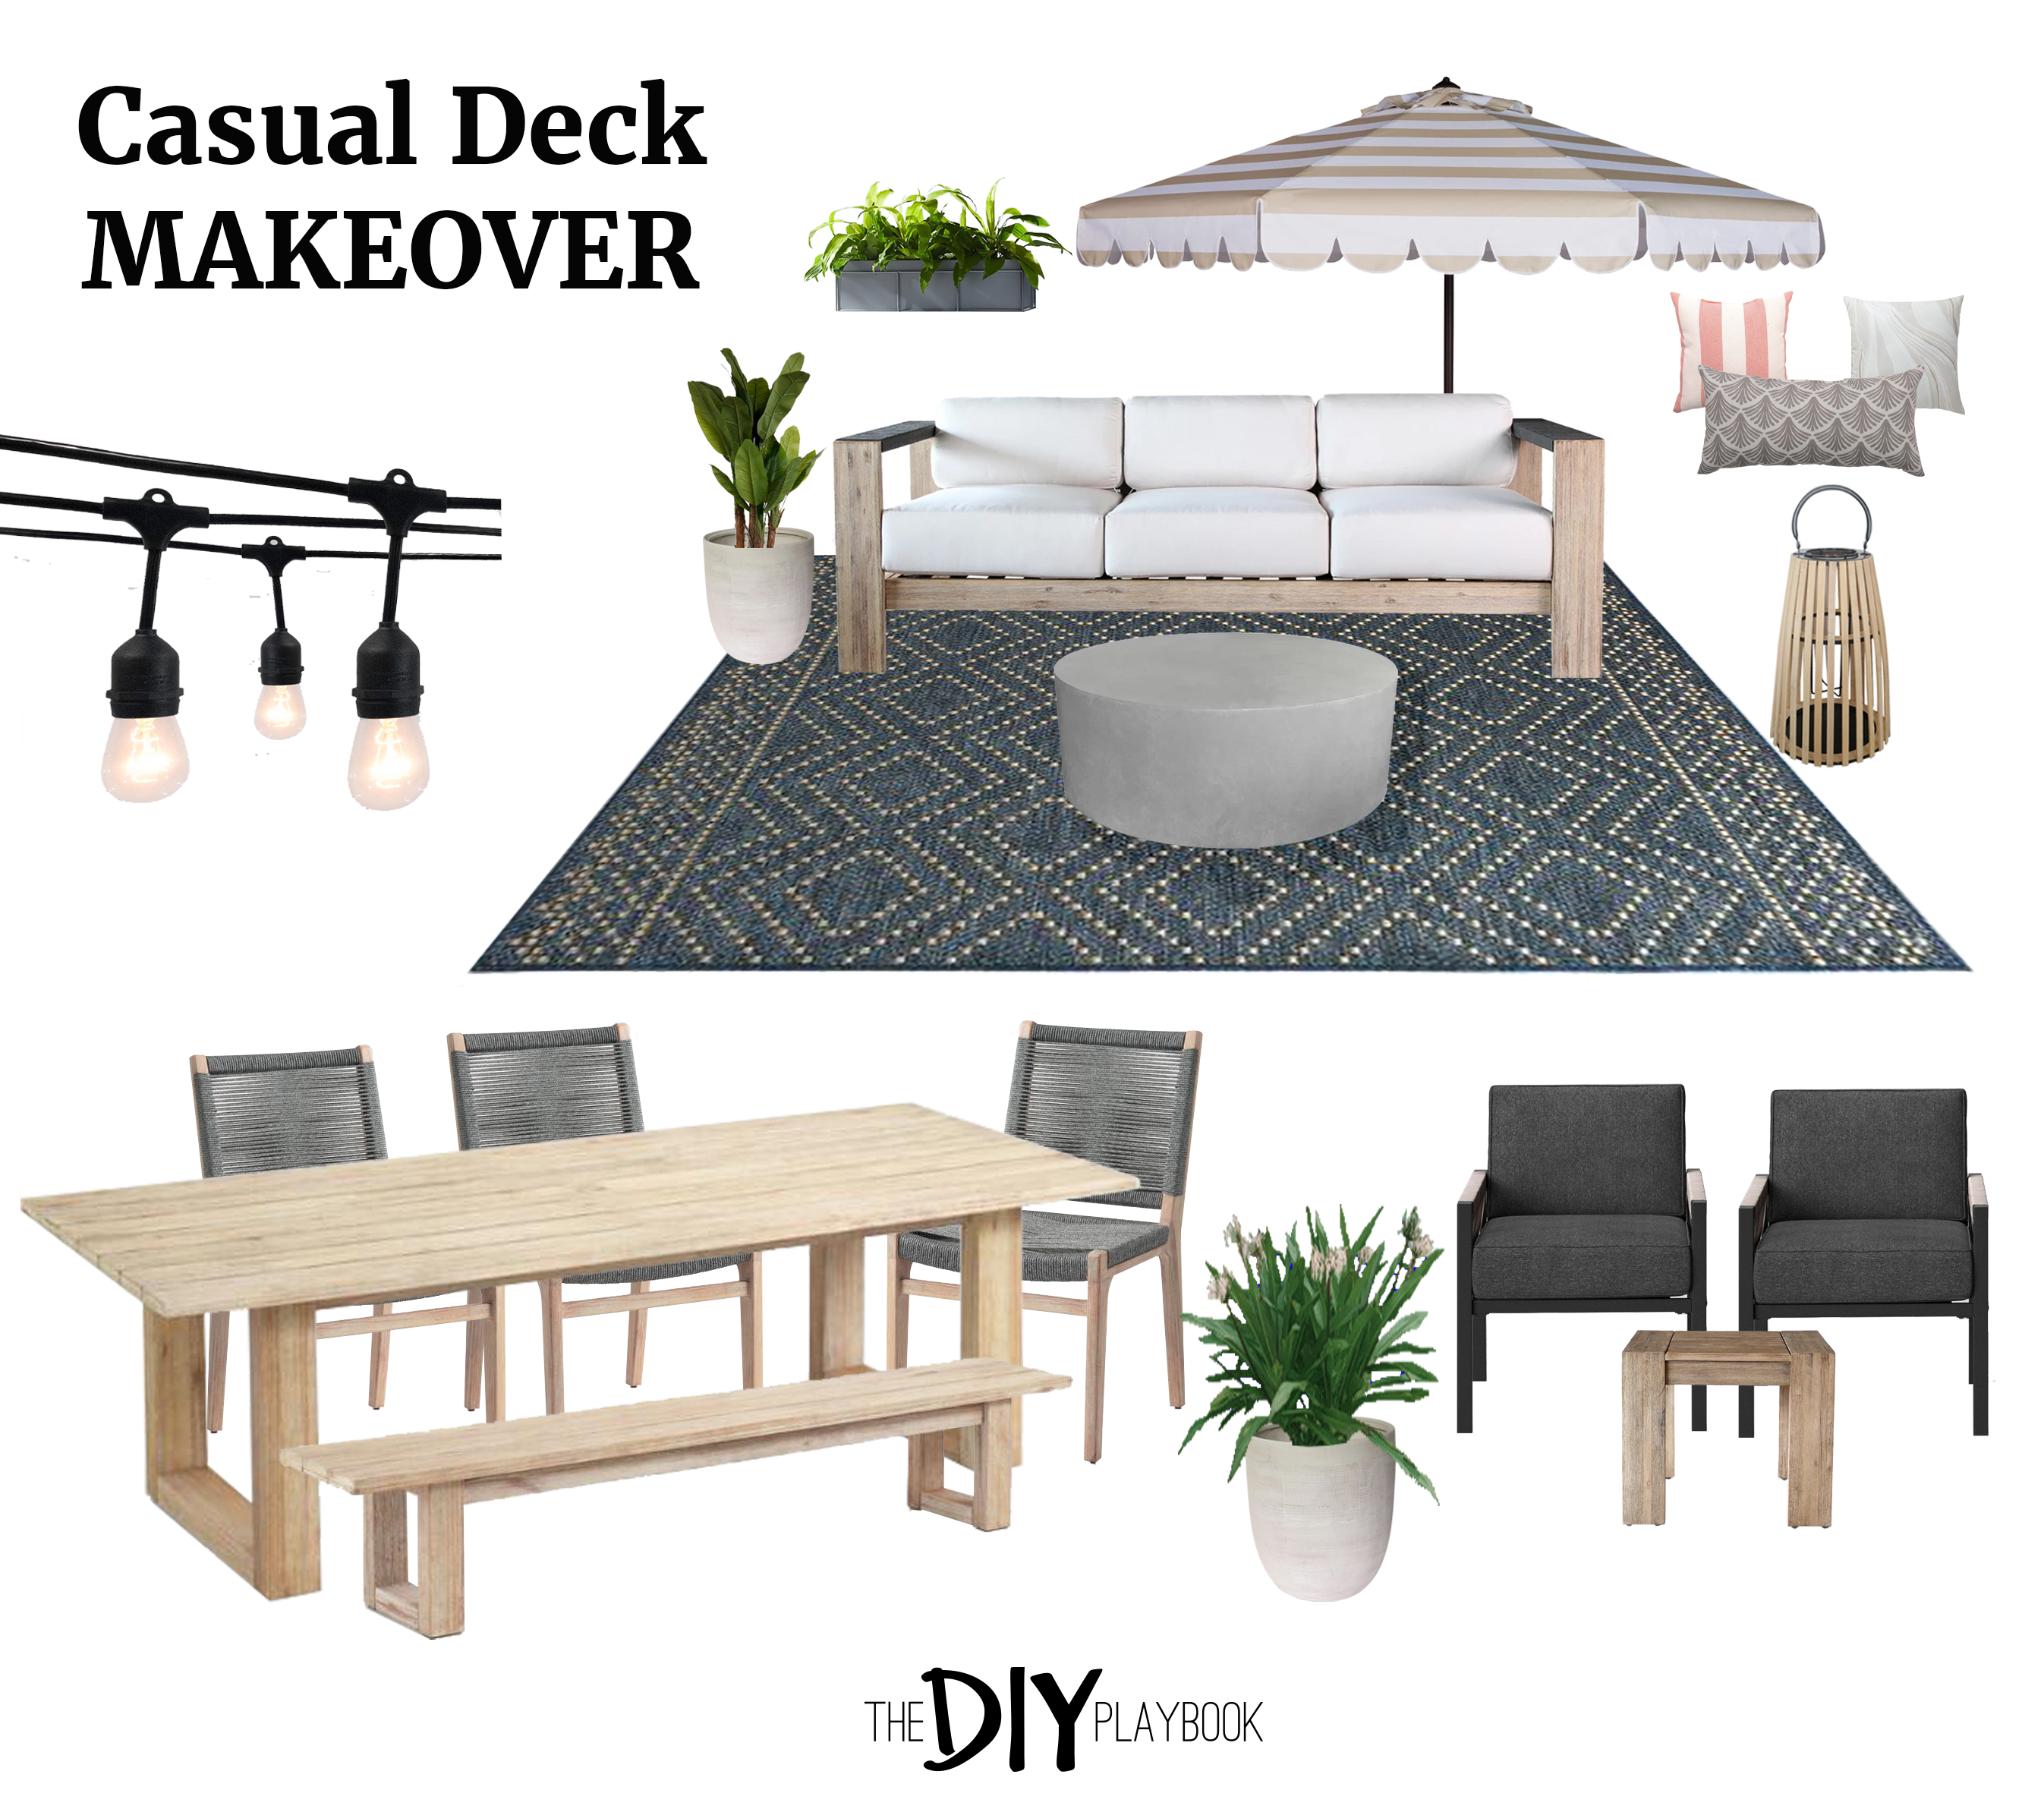 Patio Furniture Layout for a Large Deck  The DIY Playbook  Casual Deck makeover  patio furniture layout mood board How to figure out patio furniture layou